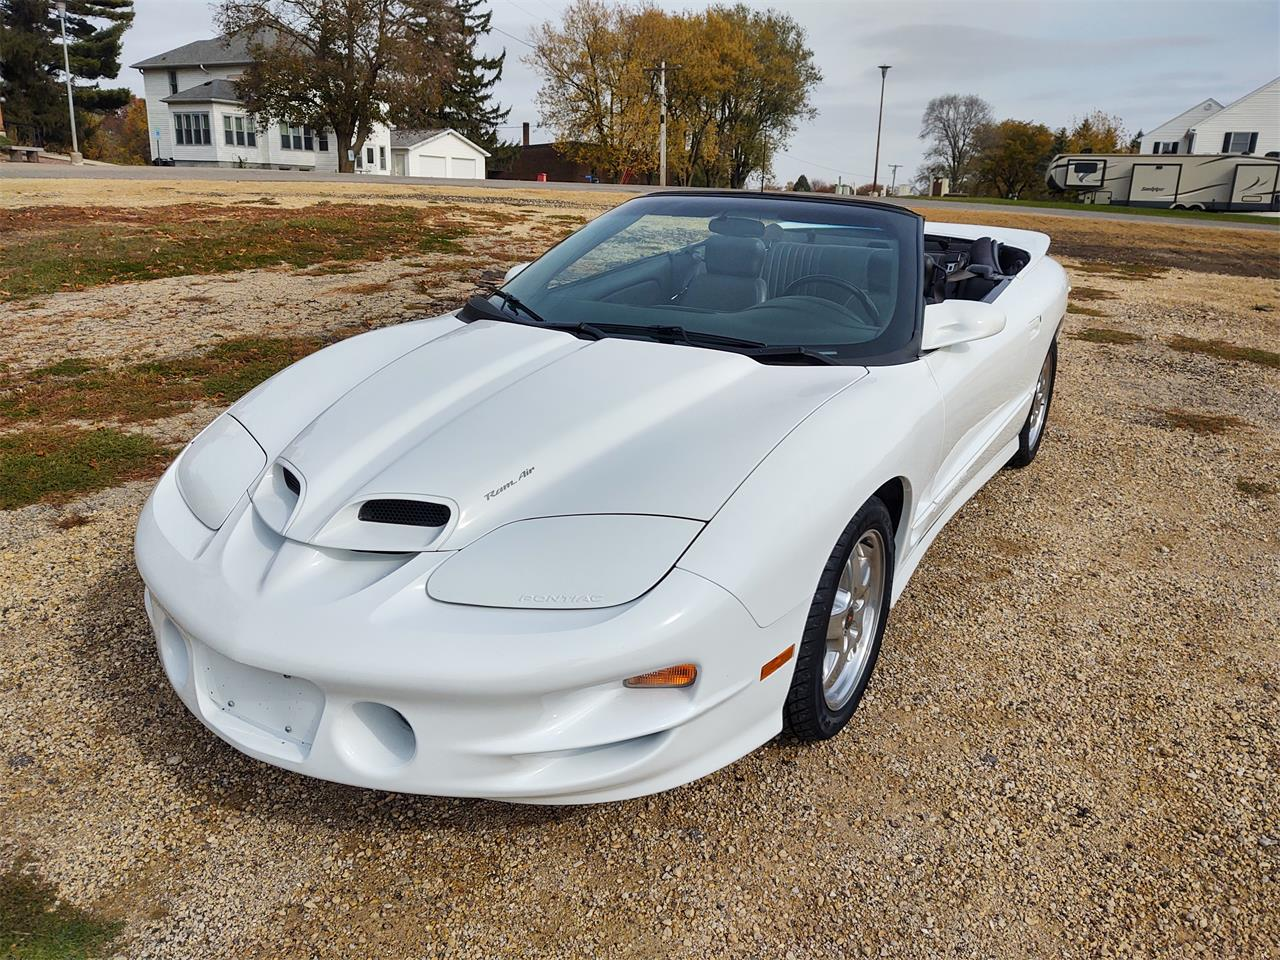 2002 Pontiac Firebird Trans Am WS6 (CC-1415006) for sale in Bellevue, Iowa